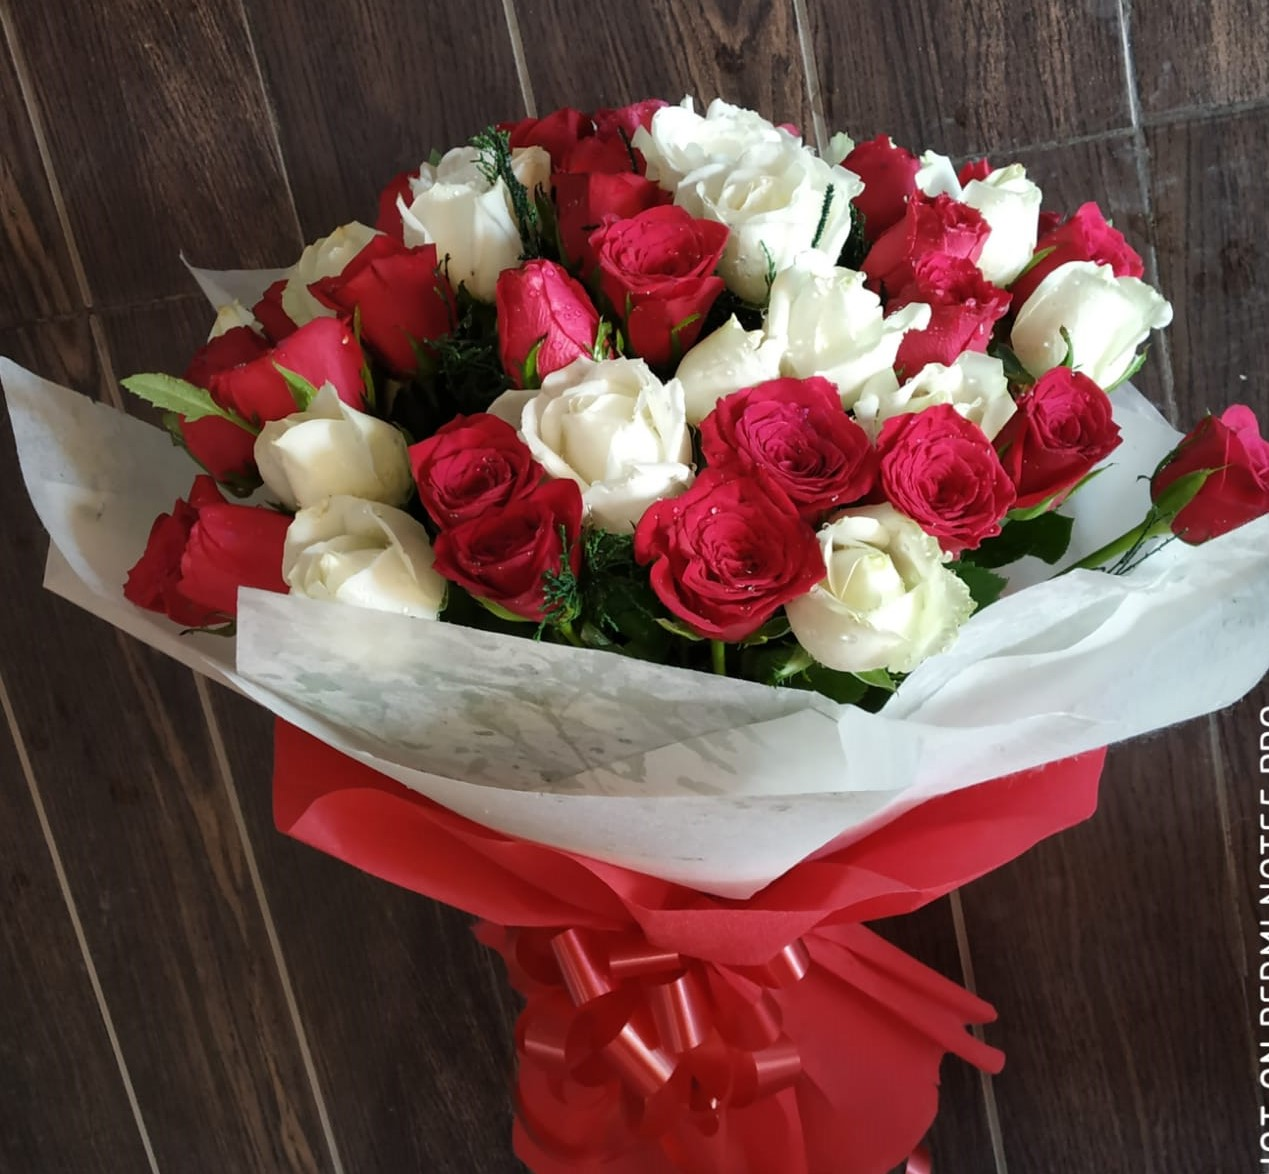 Flowers Delivery in South City 2 GurgaonRed & White Roses in Duble Layer Packing